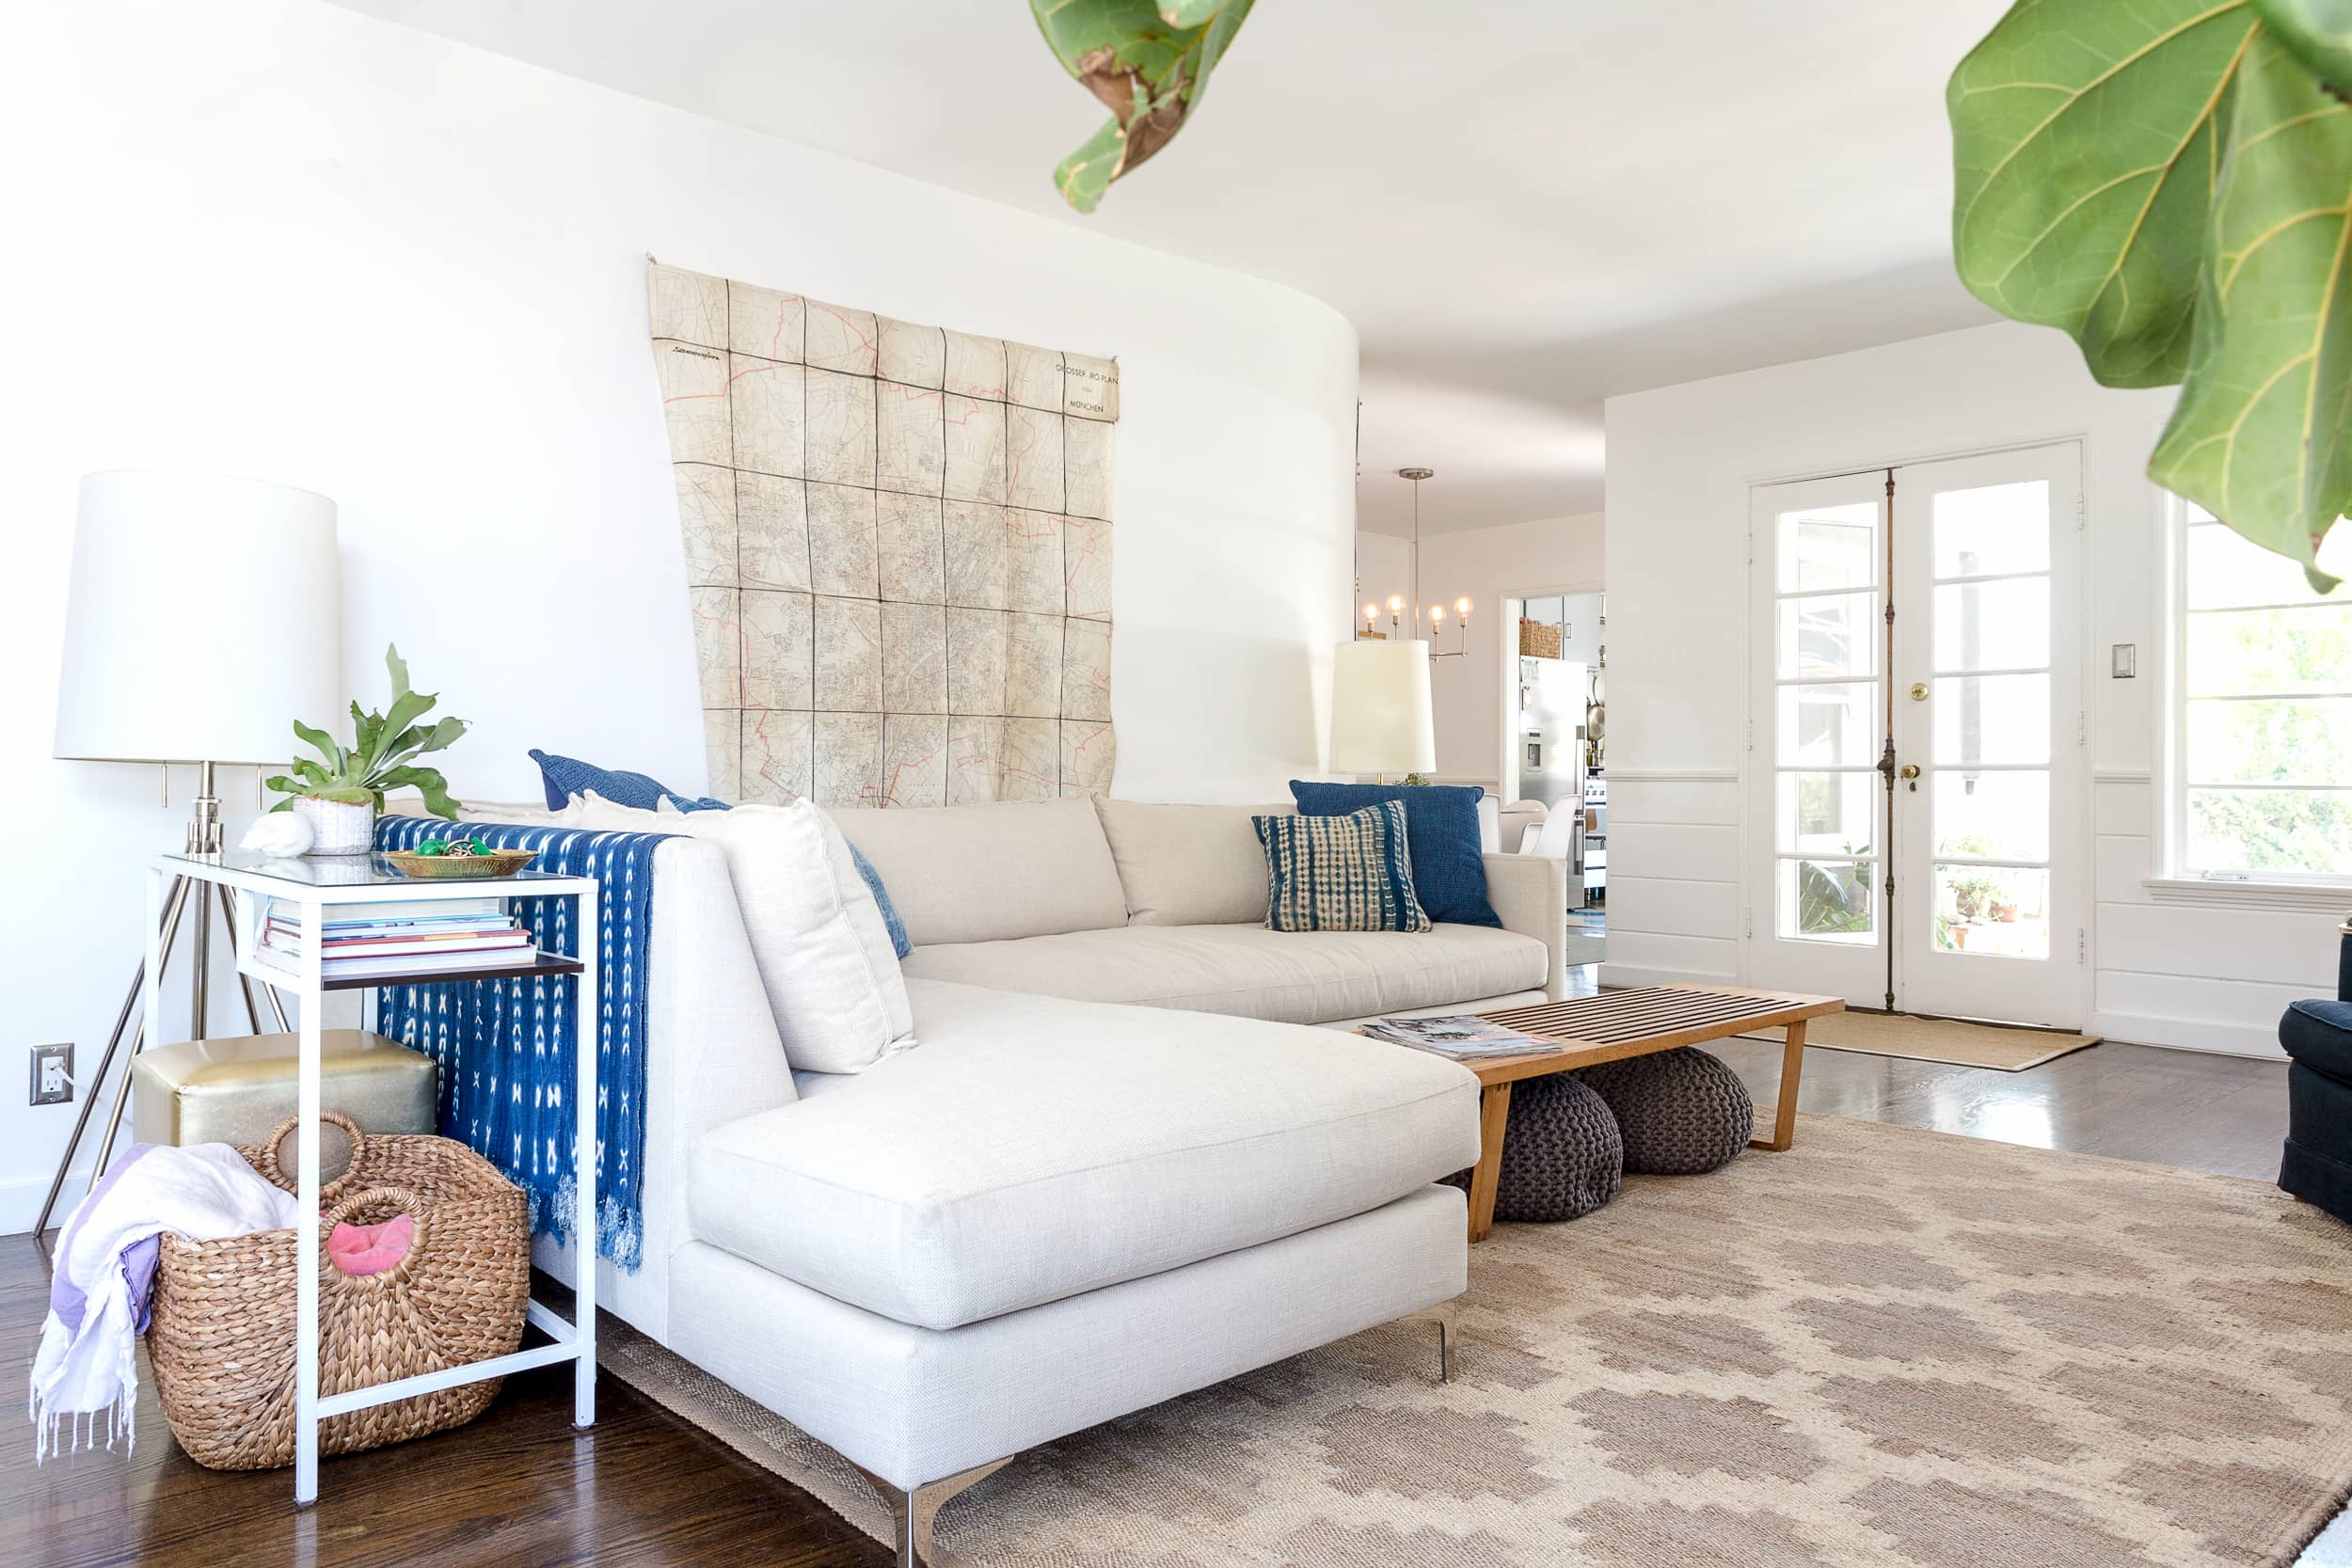 House Tour A Modern Mash Up In An Echo Park Bungalow